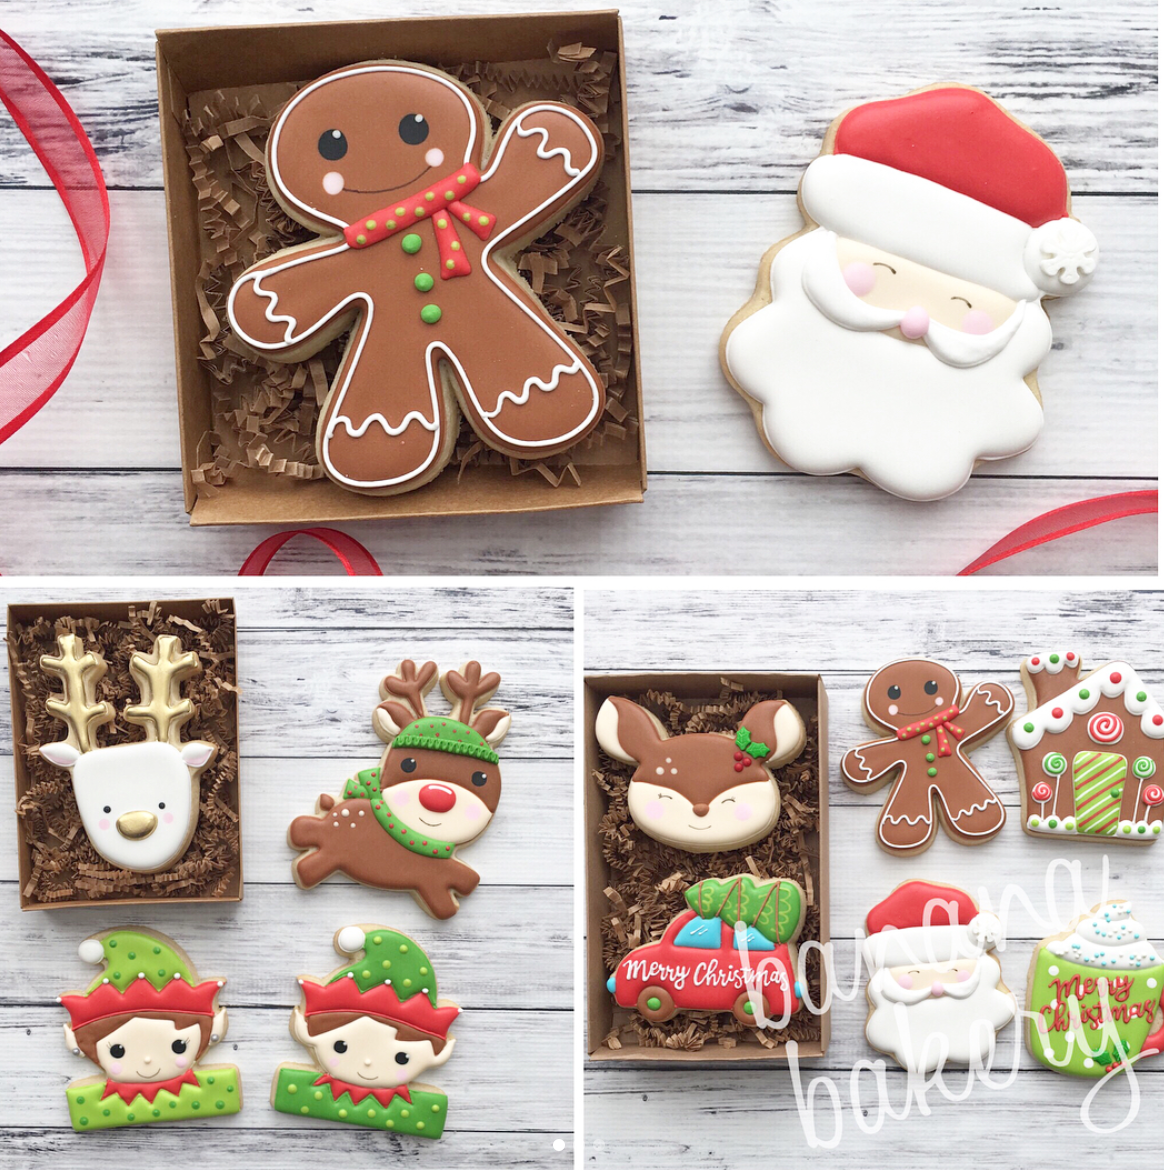 25 Cookie Cutters That Will Blow Your Mind